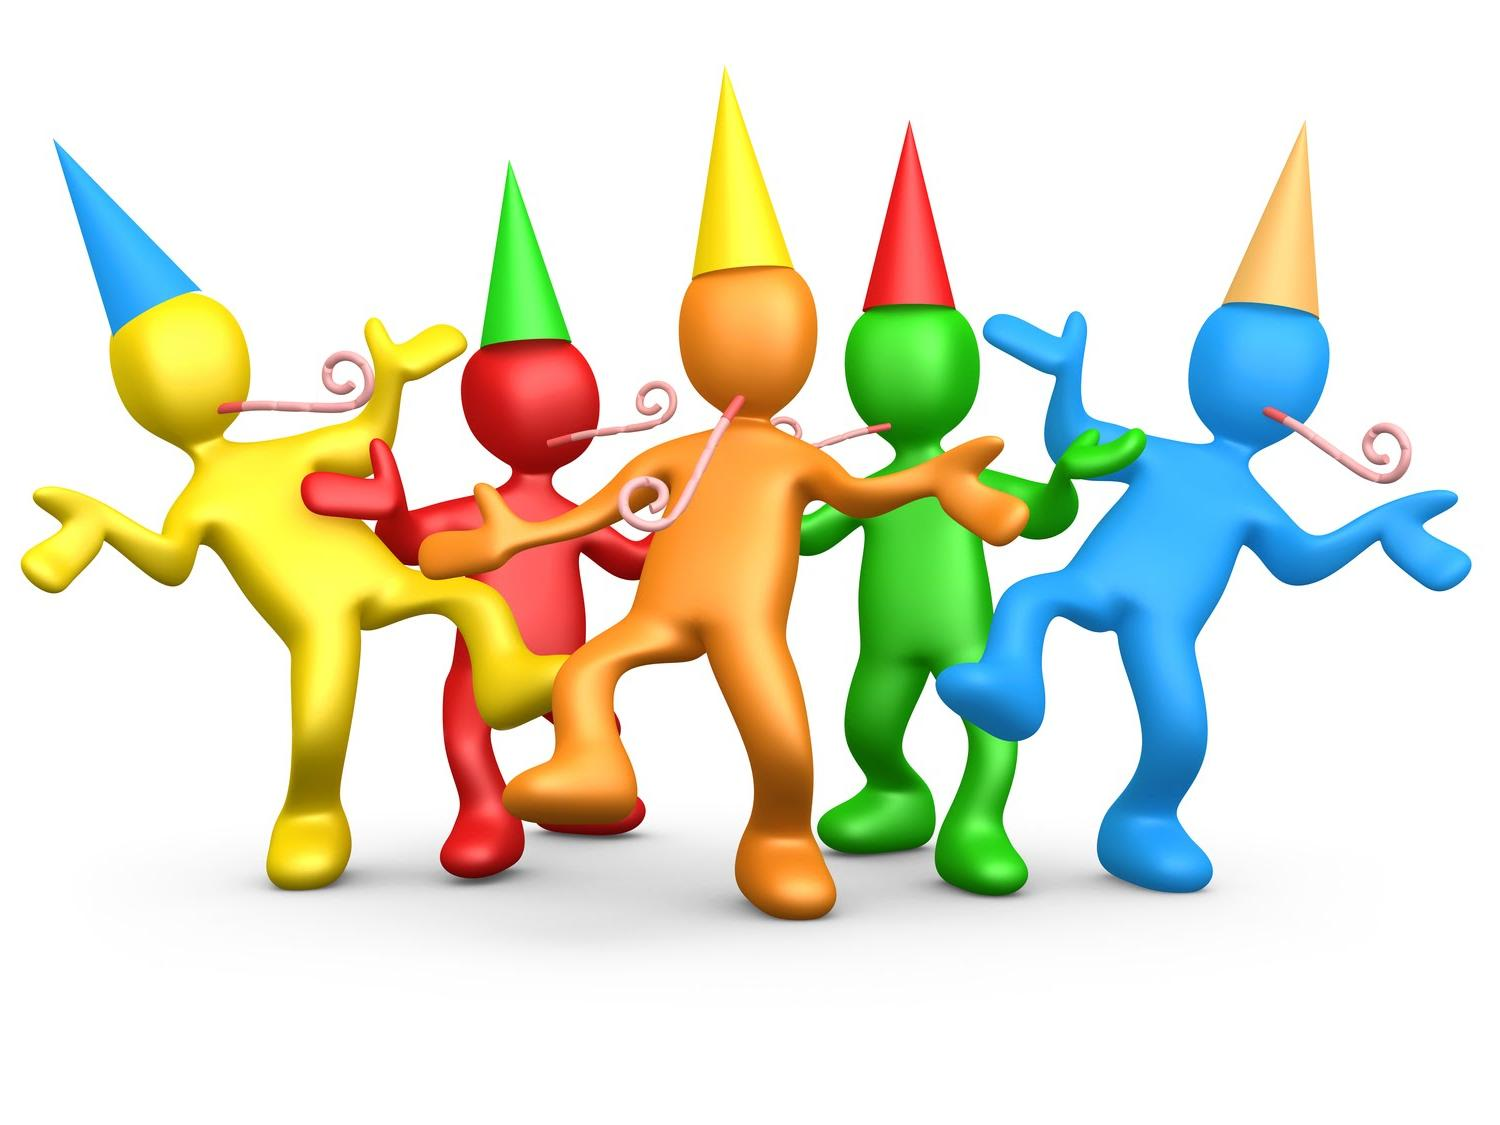 Hd celebration clipart class party clip art free images photos ... clipart transparent